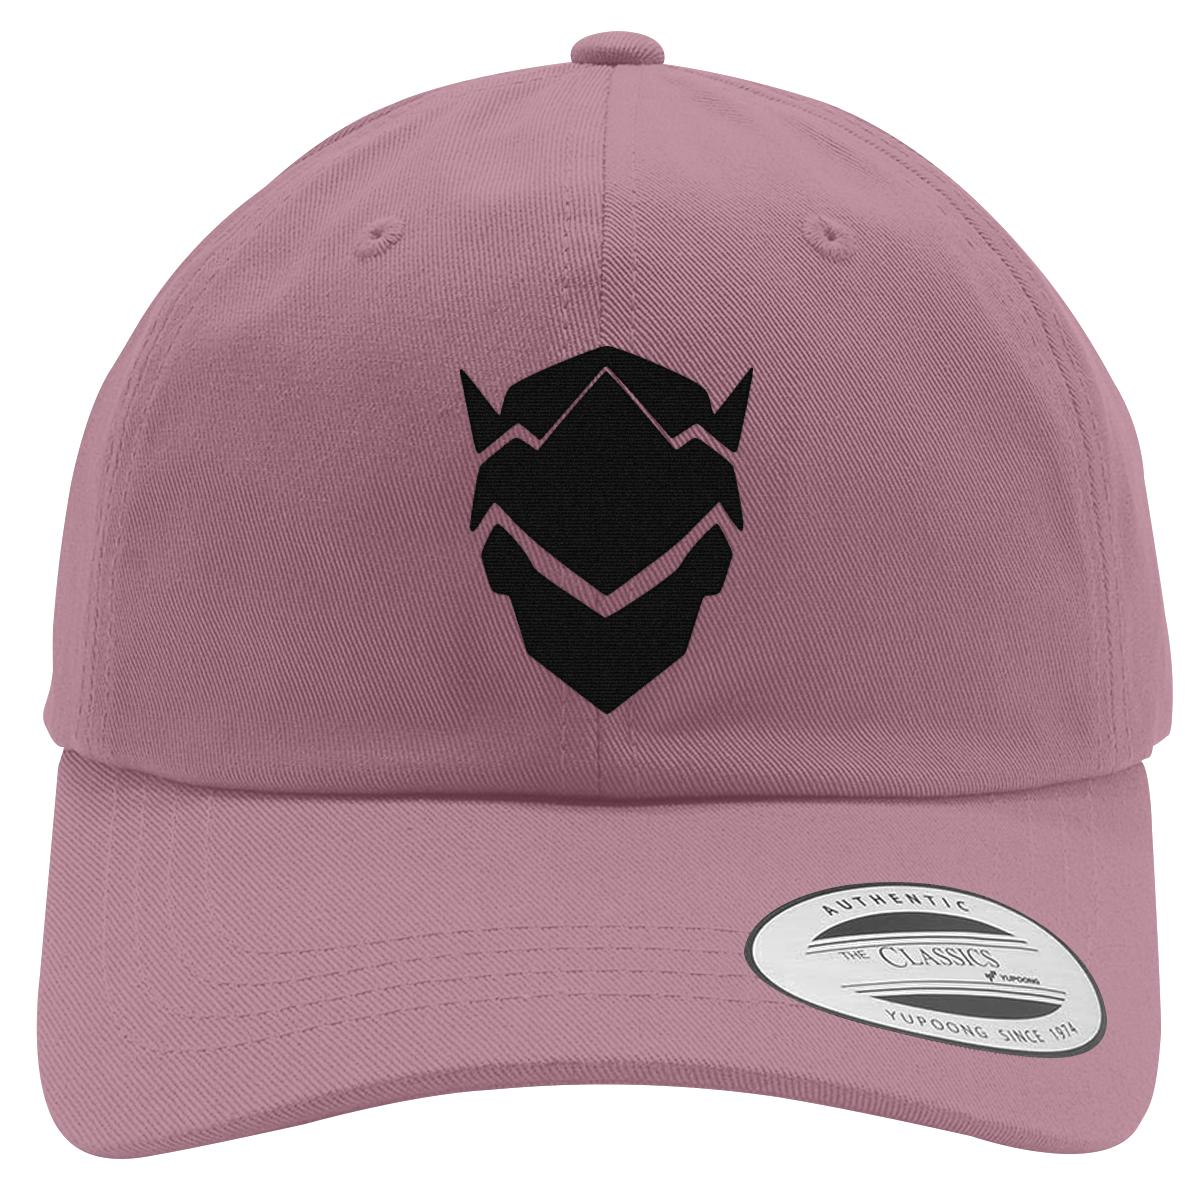 Genji Overwatch Cotton Twill Hat (Embroidered)  12f54f496775